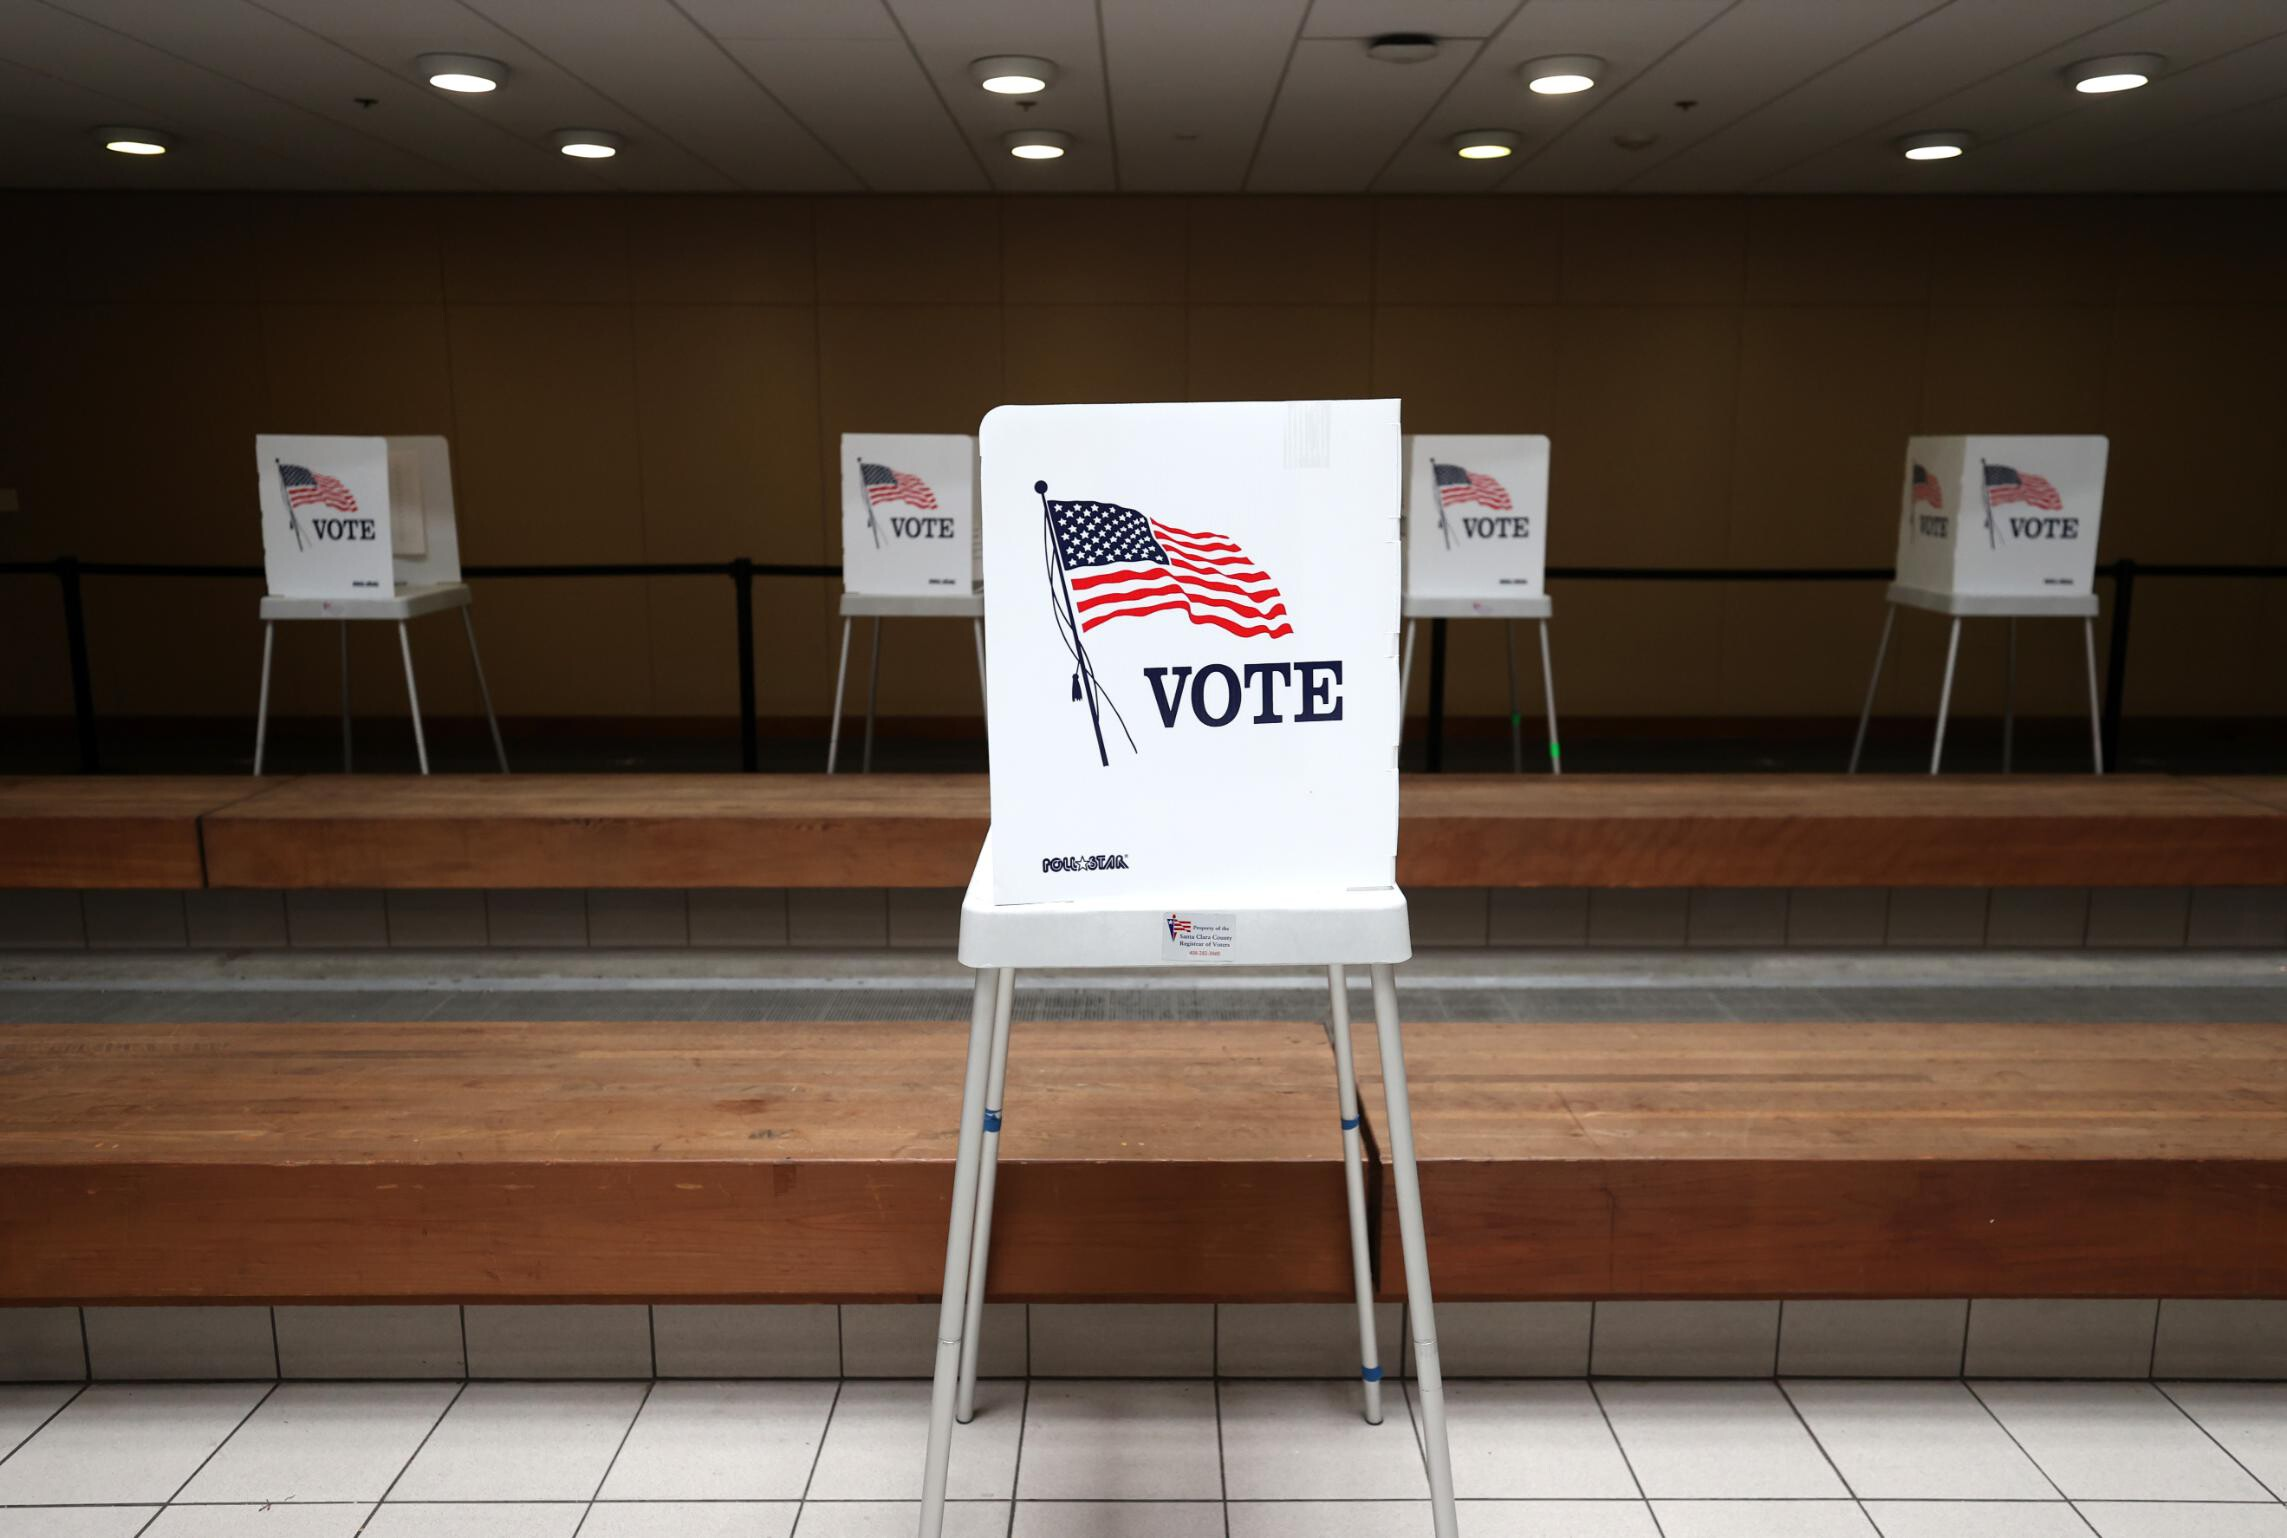 19 states passed this year laws to restrict voting, new tally finds